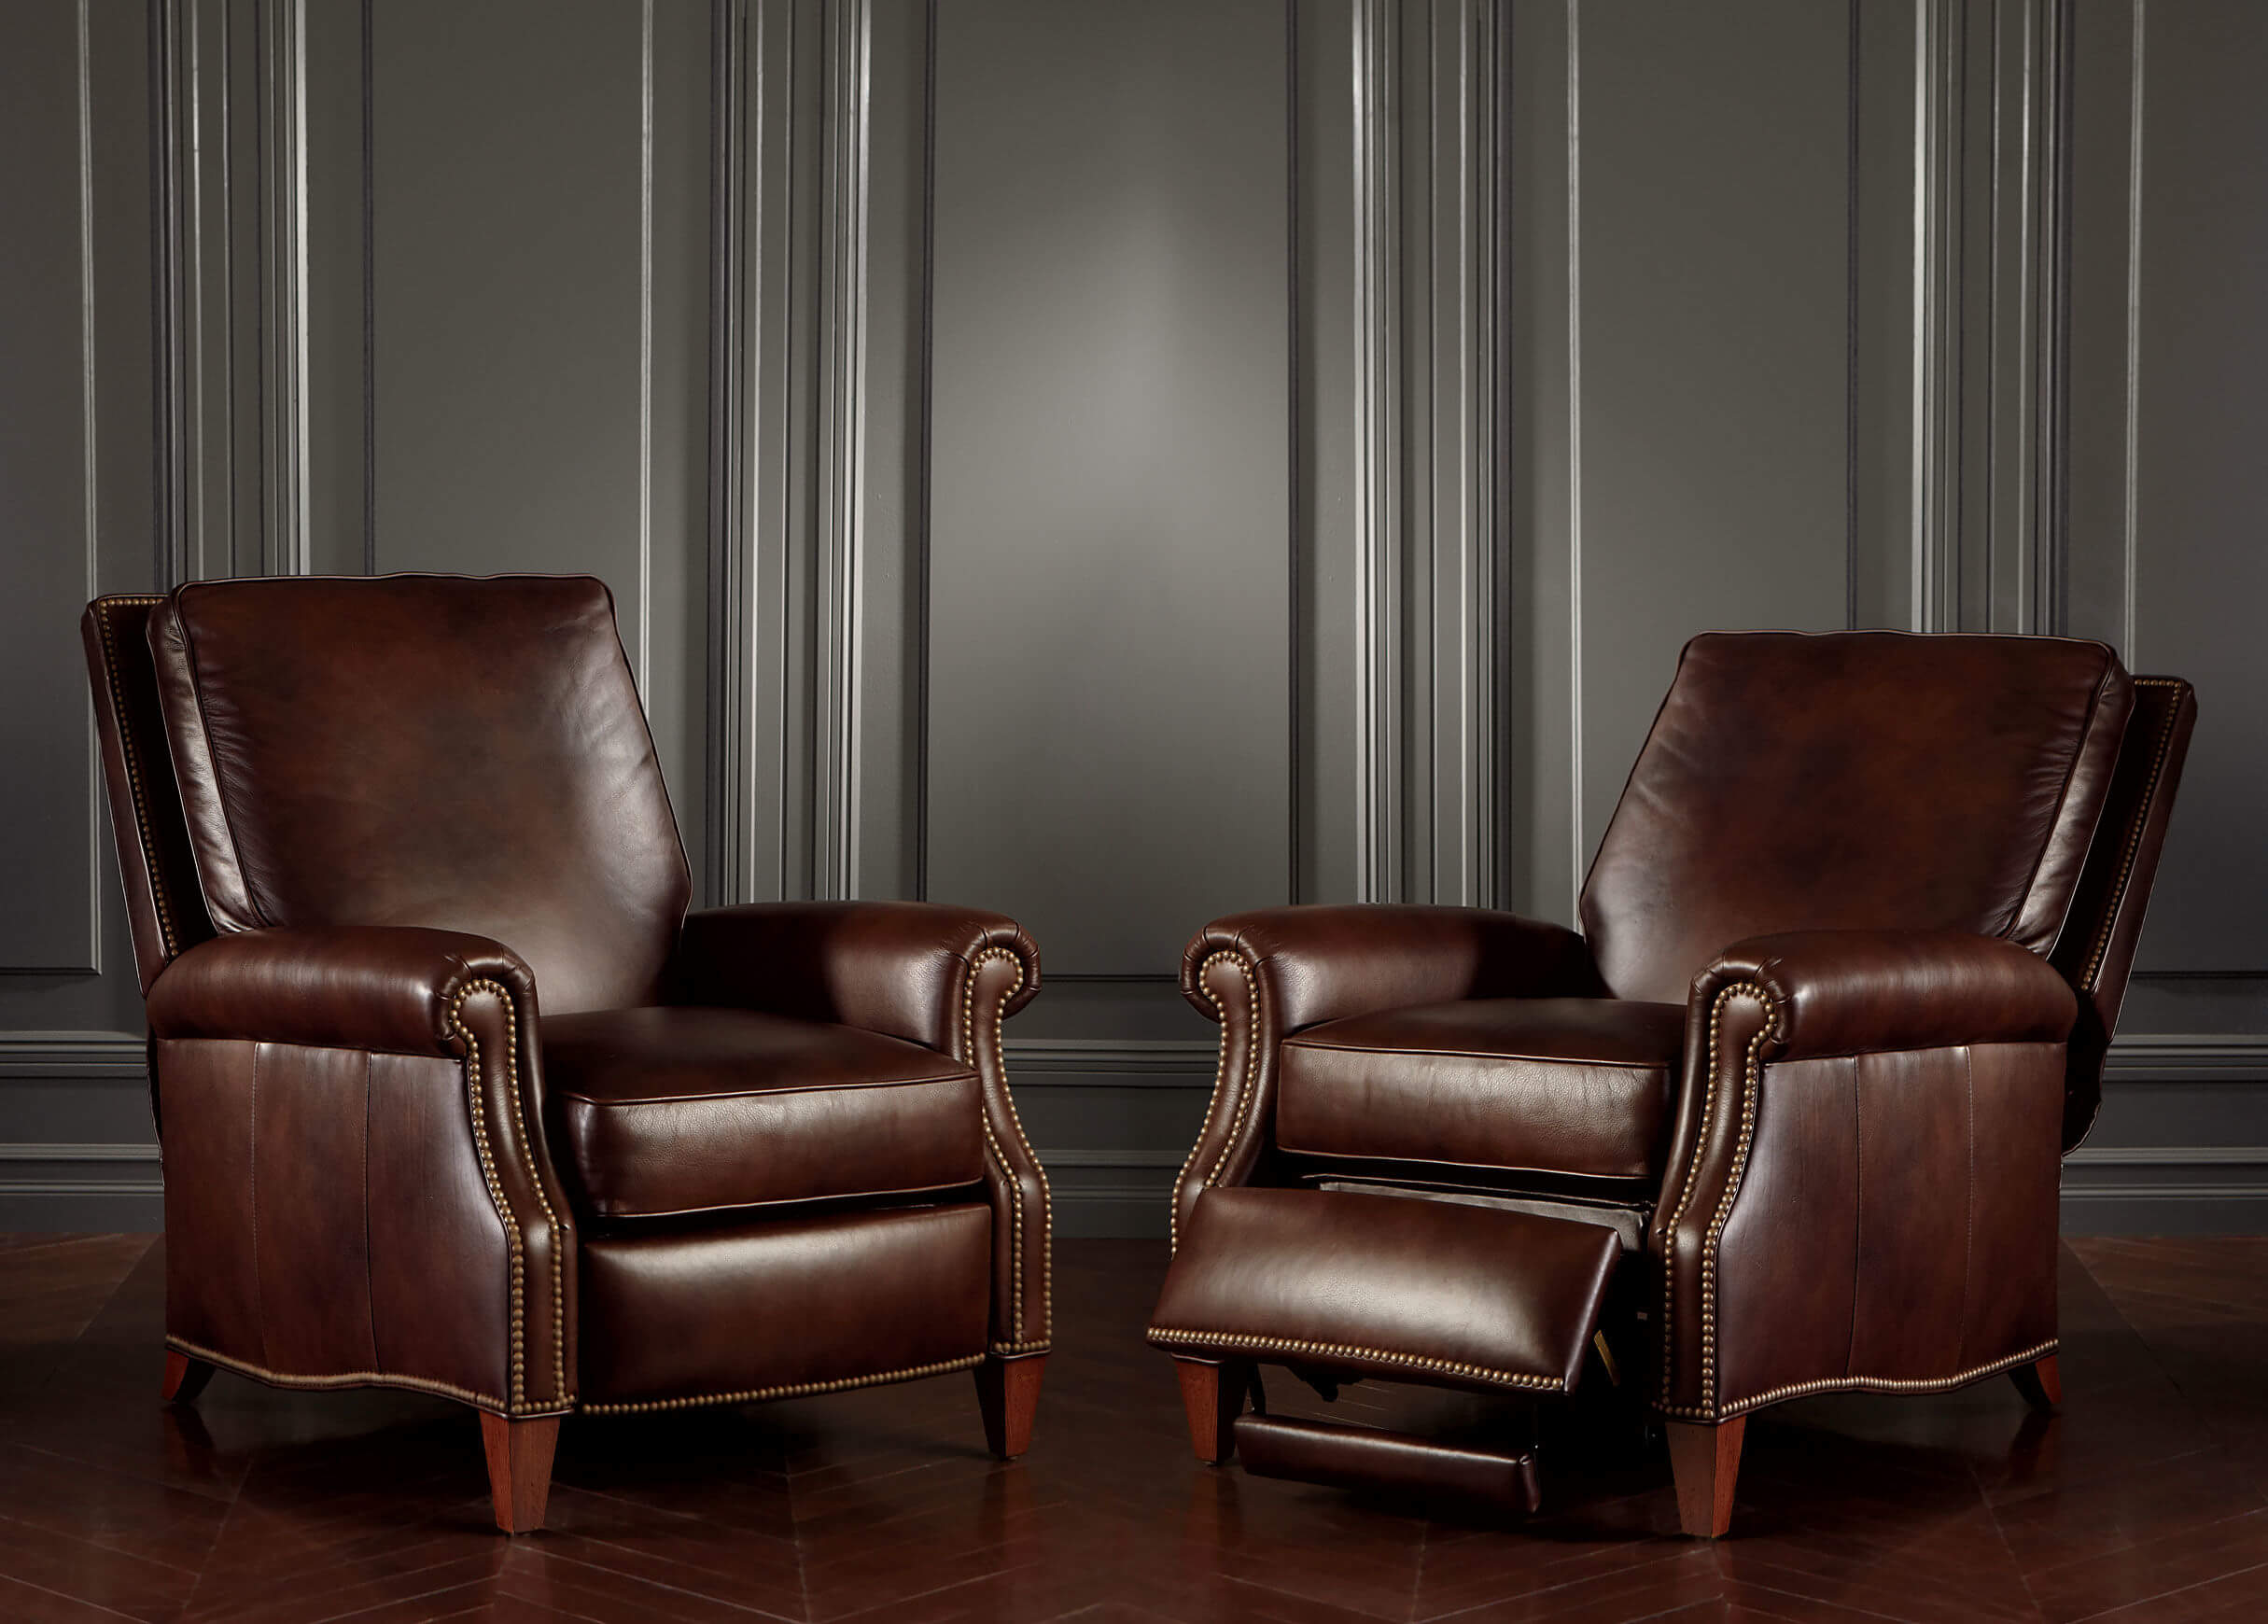 Best Leather Chairs Top 8 Best Luxury Leather Arm Chair Recliners Sit In